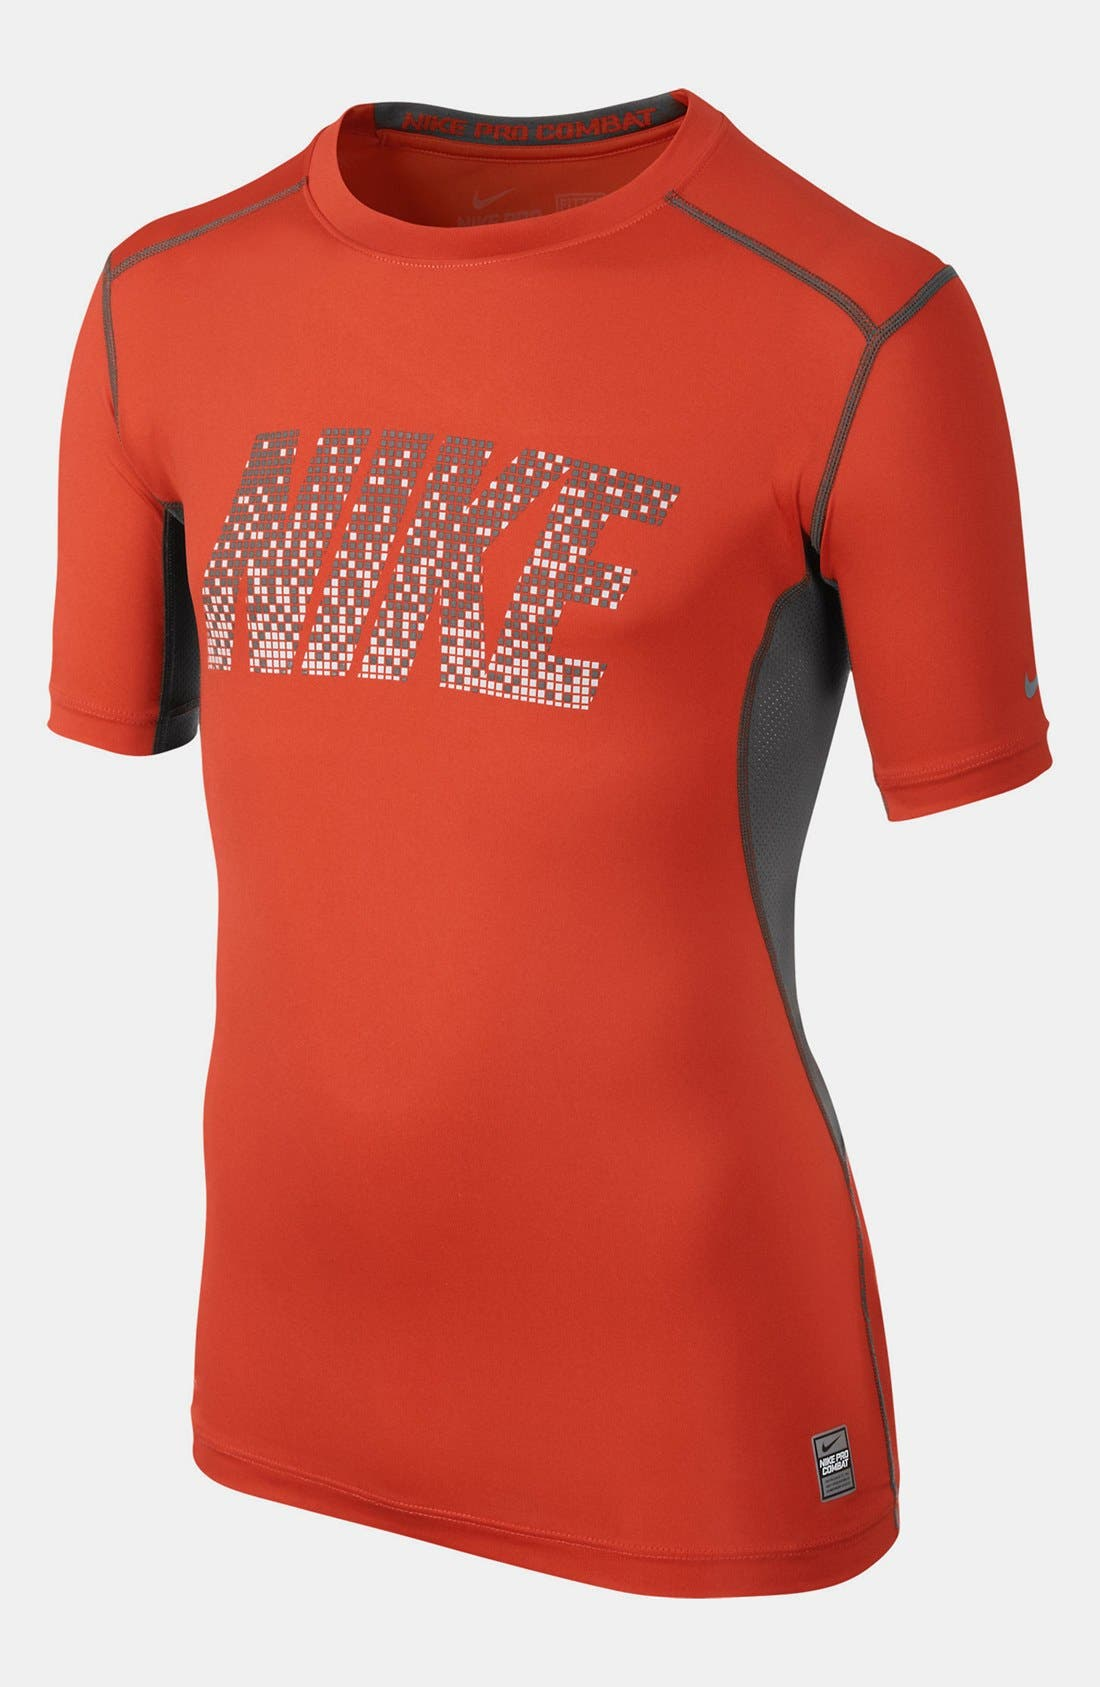 Alternate Image 1 Selected - Nike 'Pro Core' Fitted Graphic T-Shirt (Big Boys)